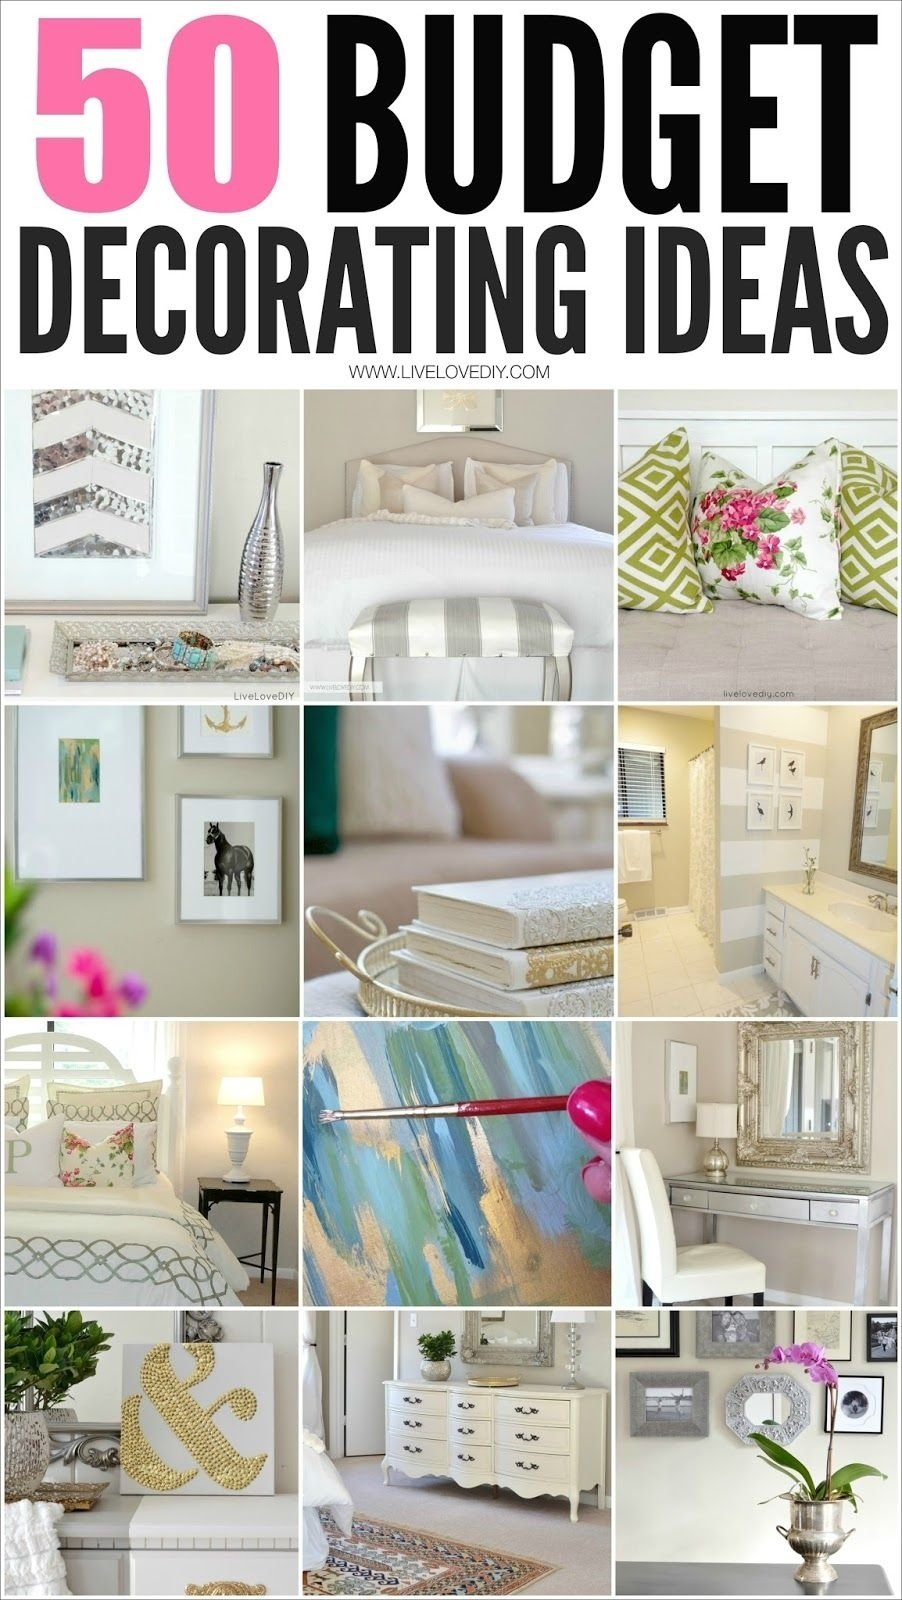 10 Most Popular Diy Decorating Ideas For Apartments 50 budget decorating tips you should know livelovediy budgeting 1 2020